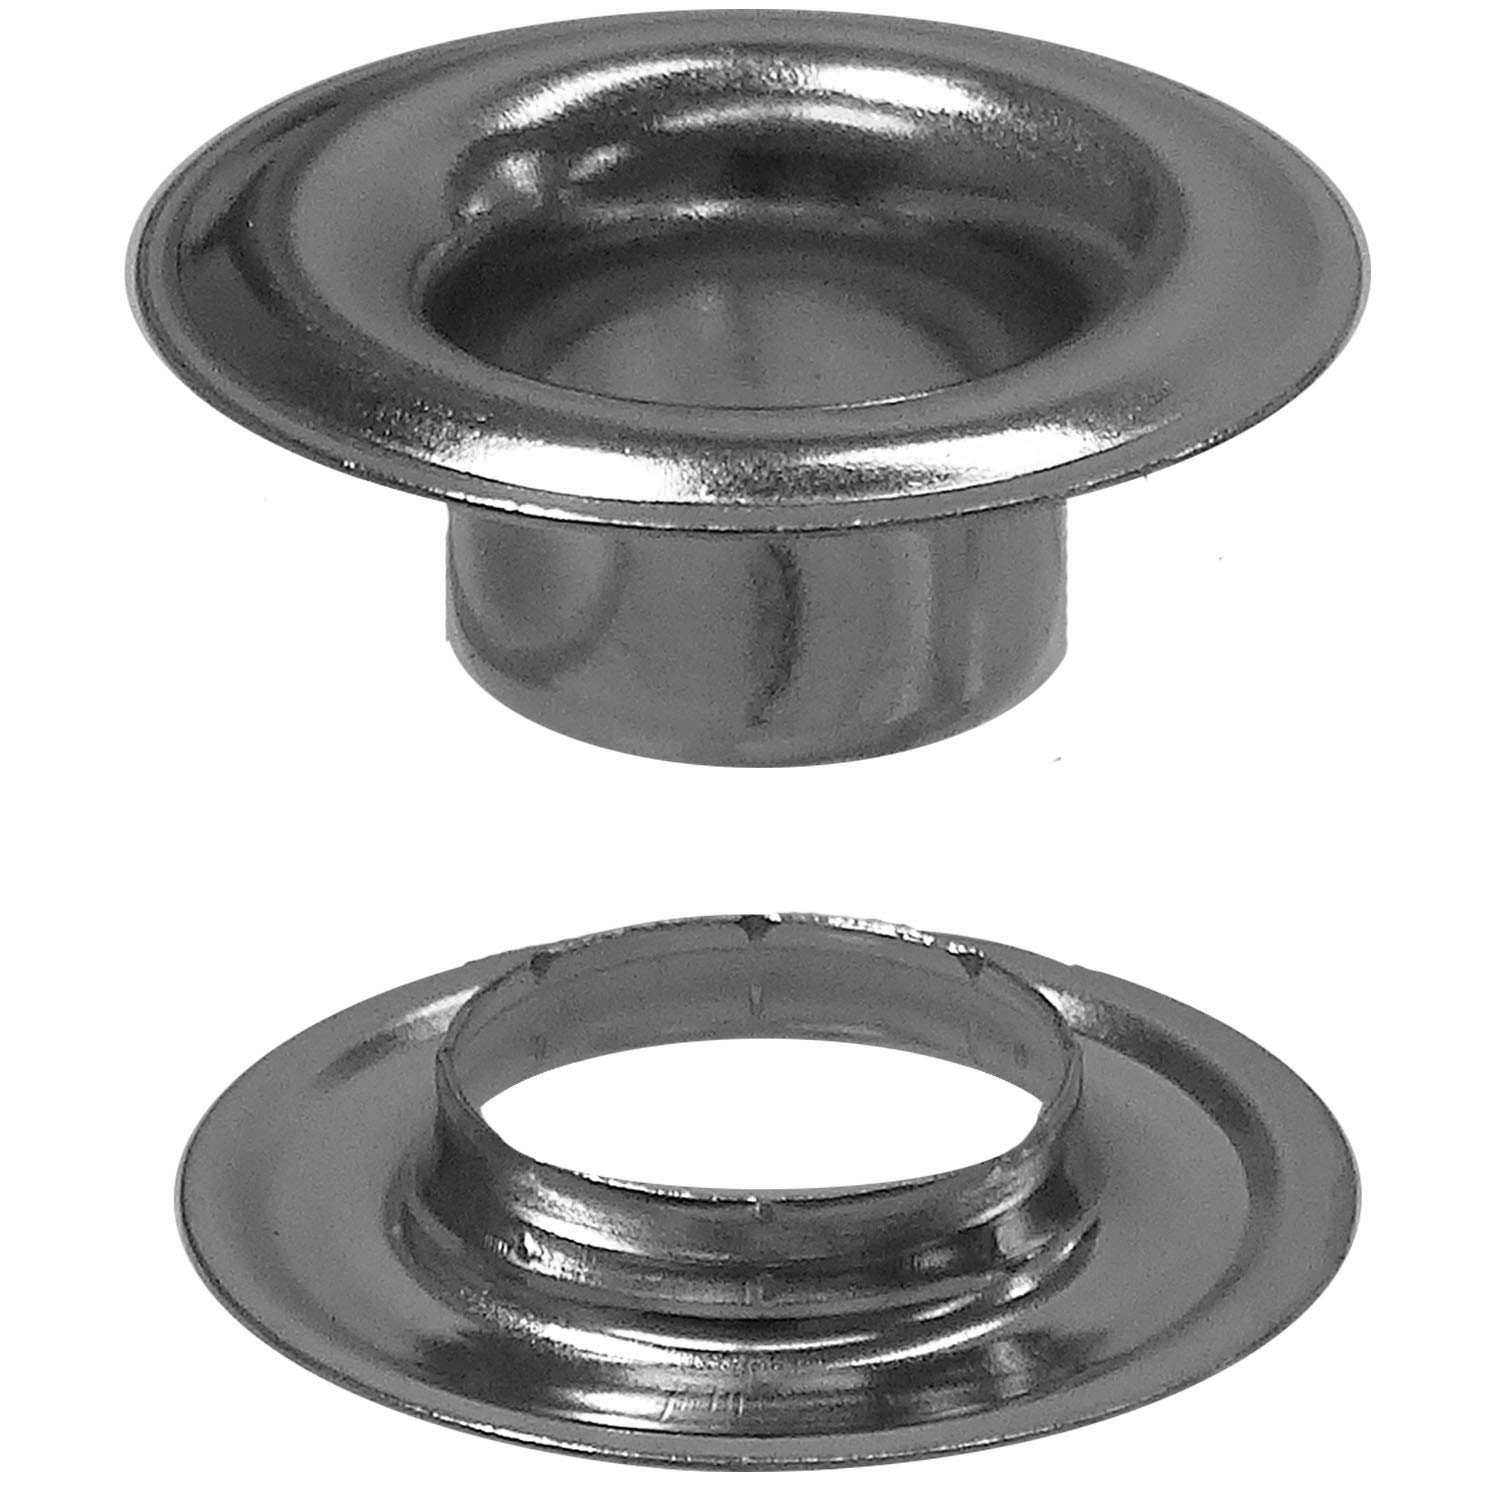 Stimpson Sheet Metal Grommet and Neck Washer Nickel-Plated Durable, Reliable, Heavy-Duty #4 Set (1,440 Pieces of Each)